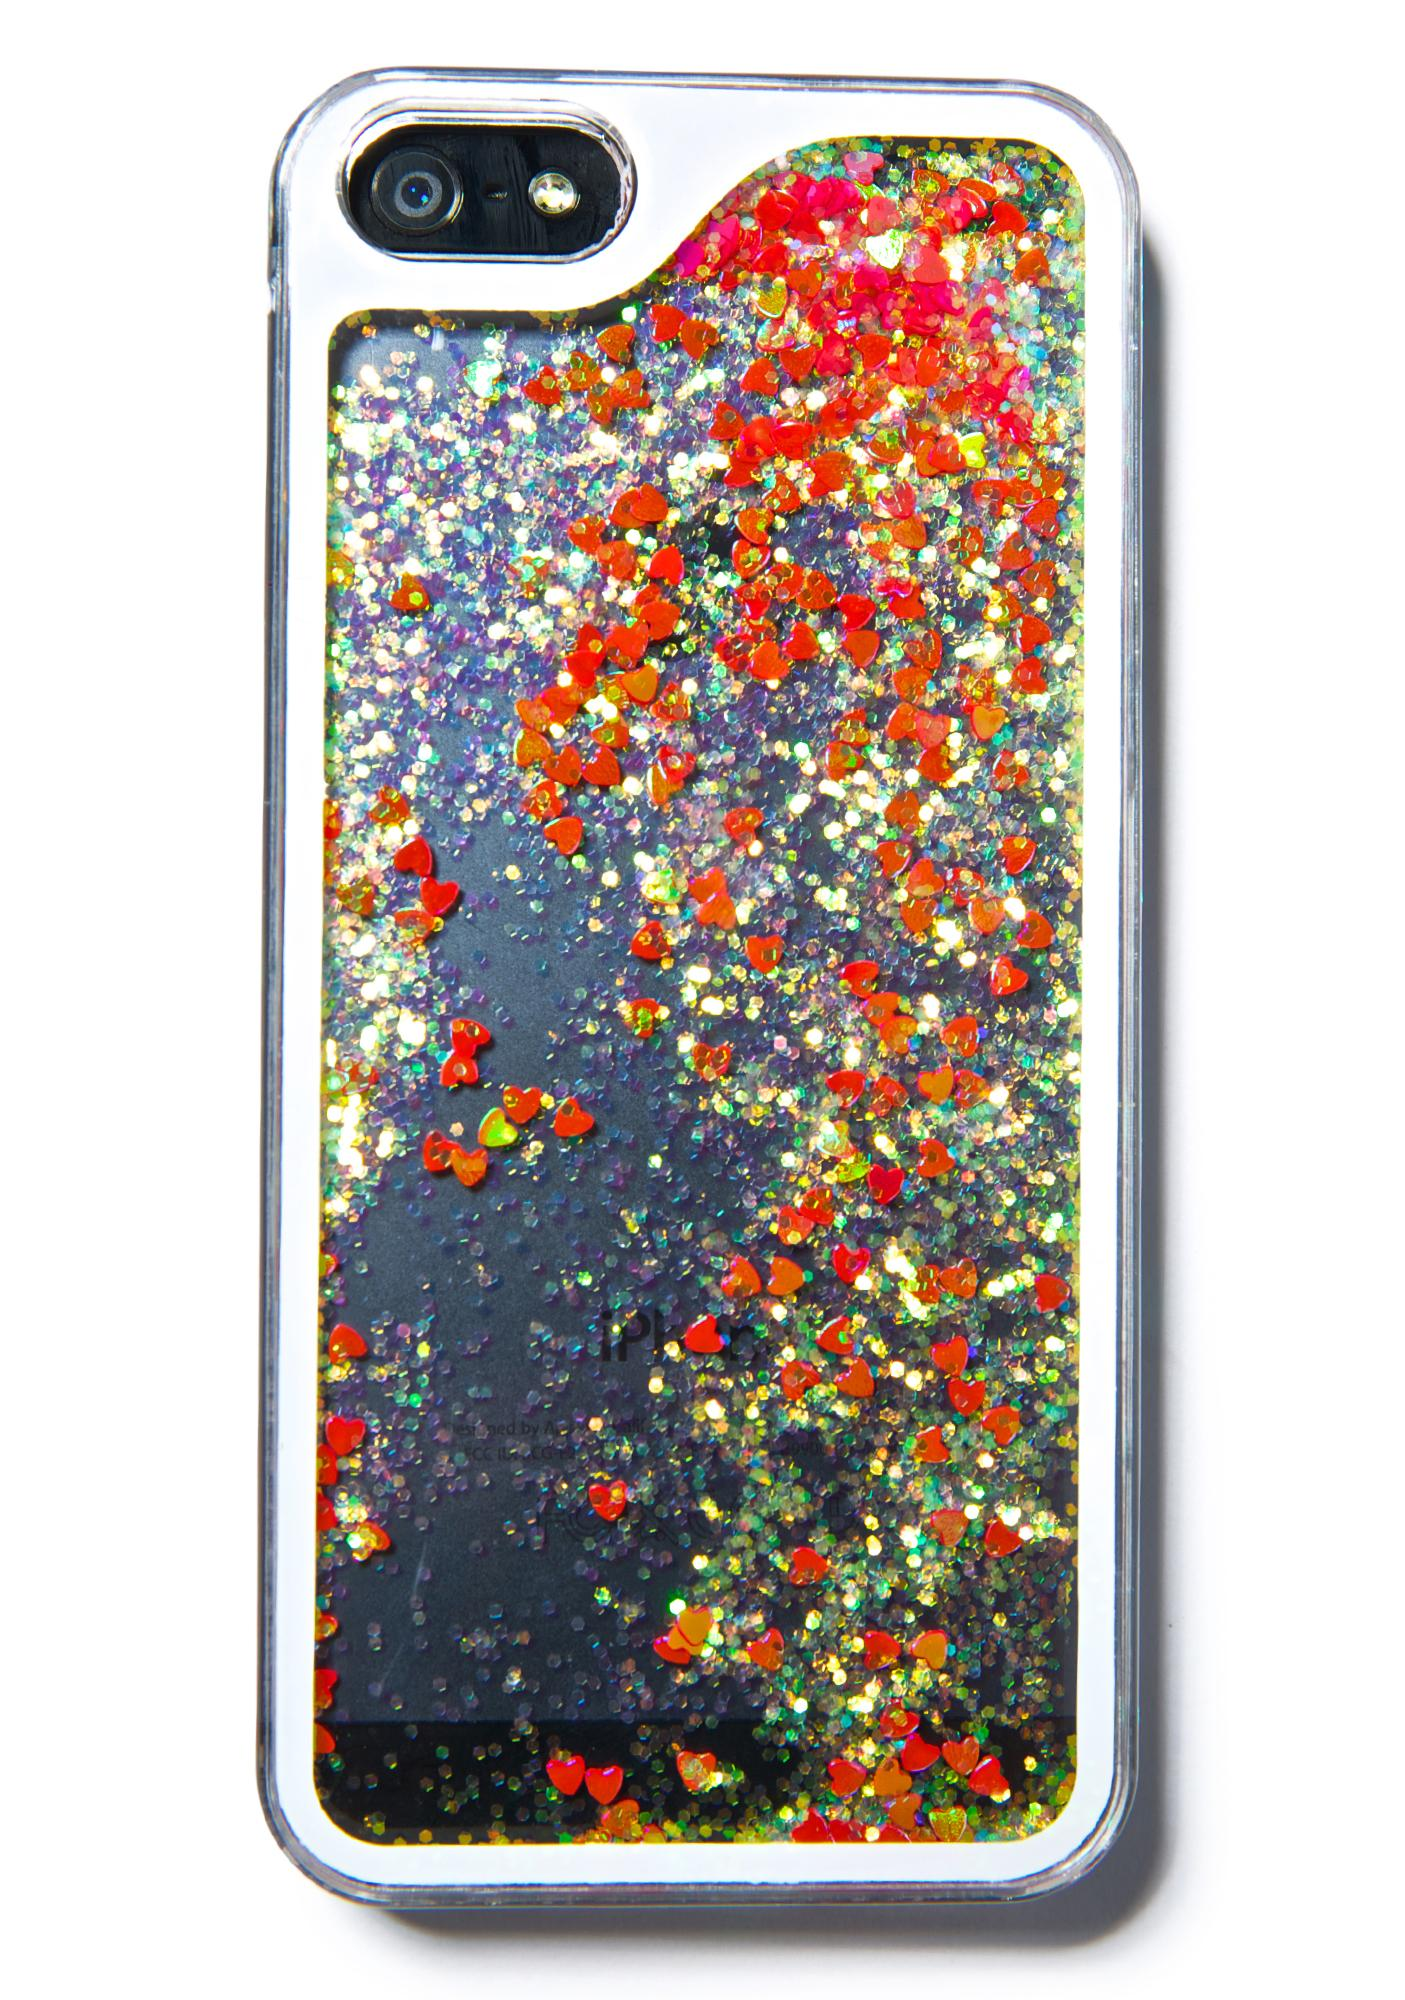 Falling Hearts Glitterfalls iPhone Case